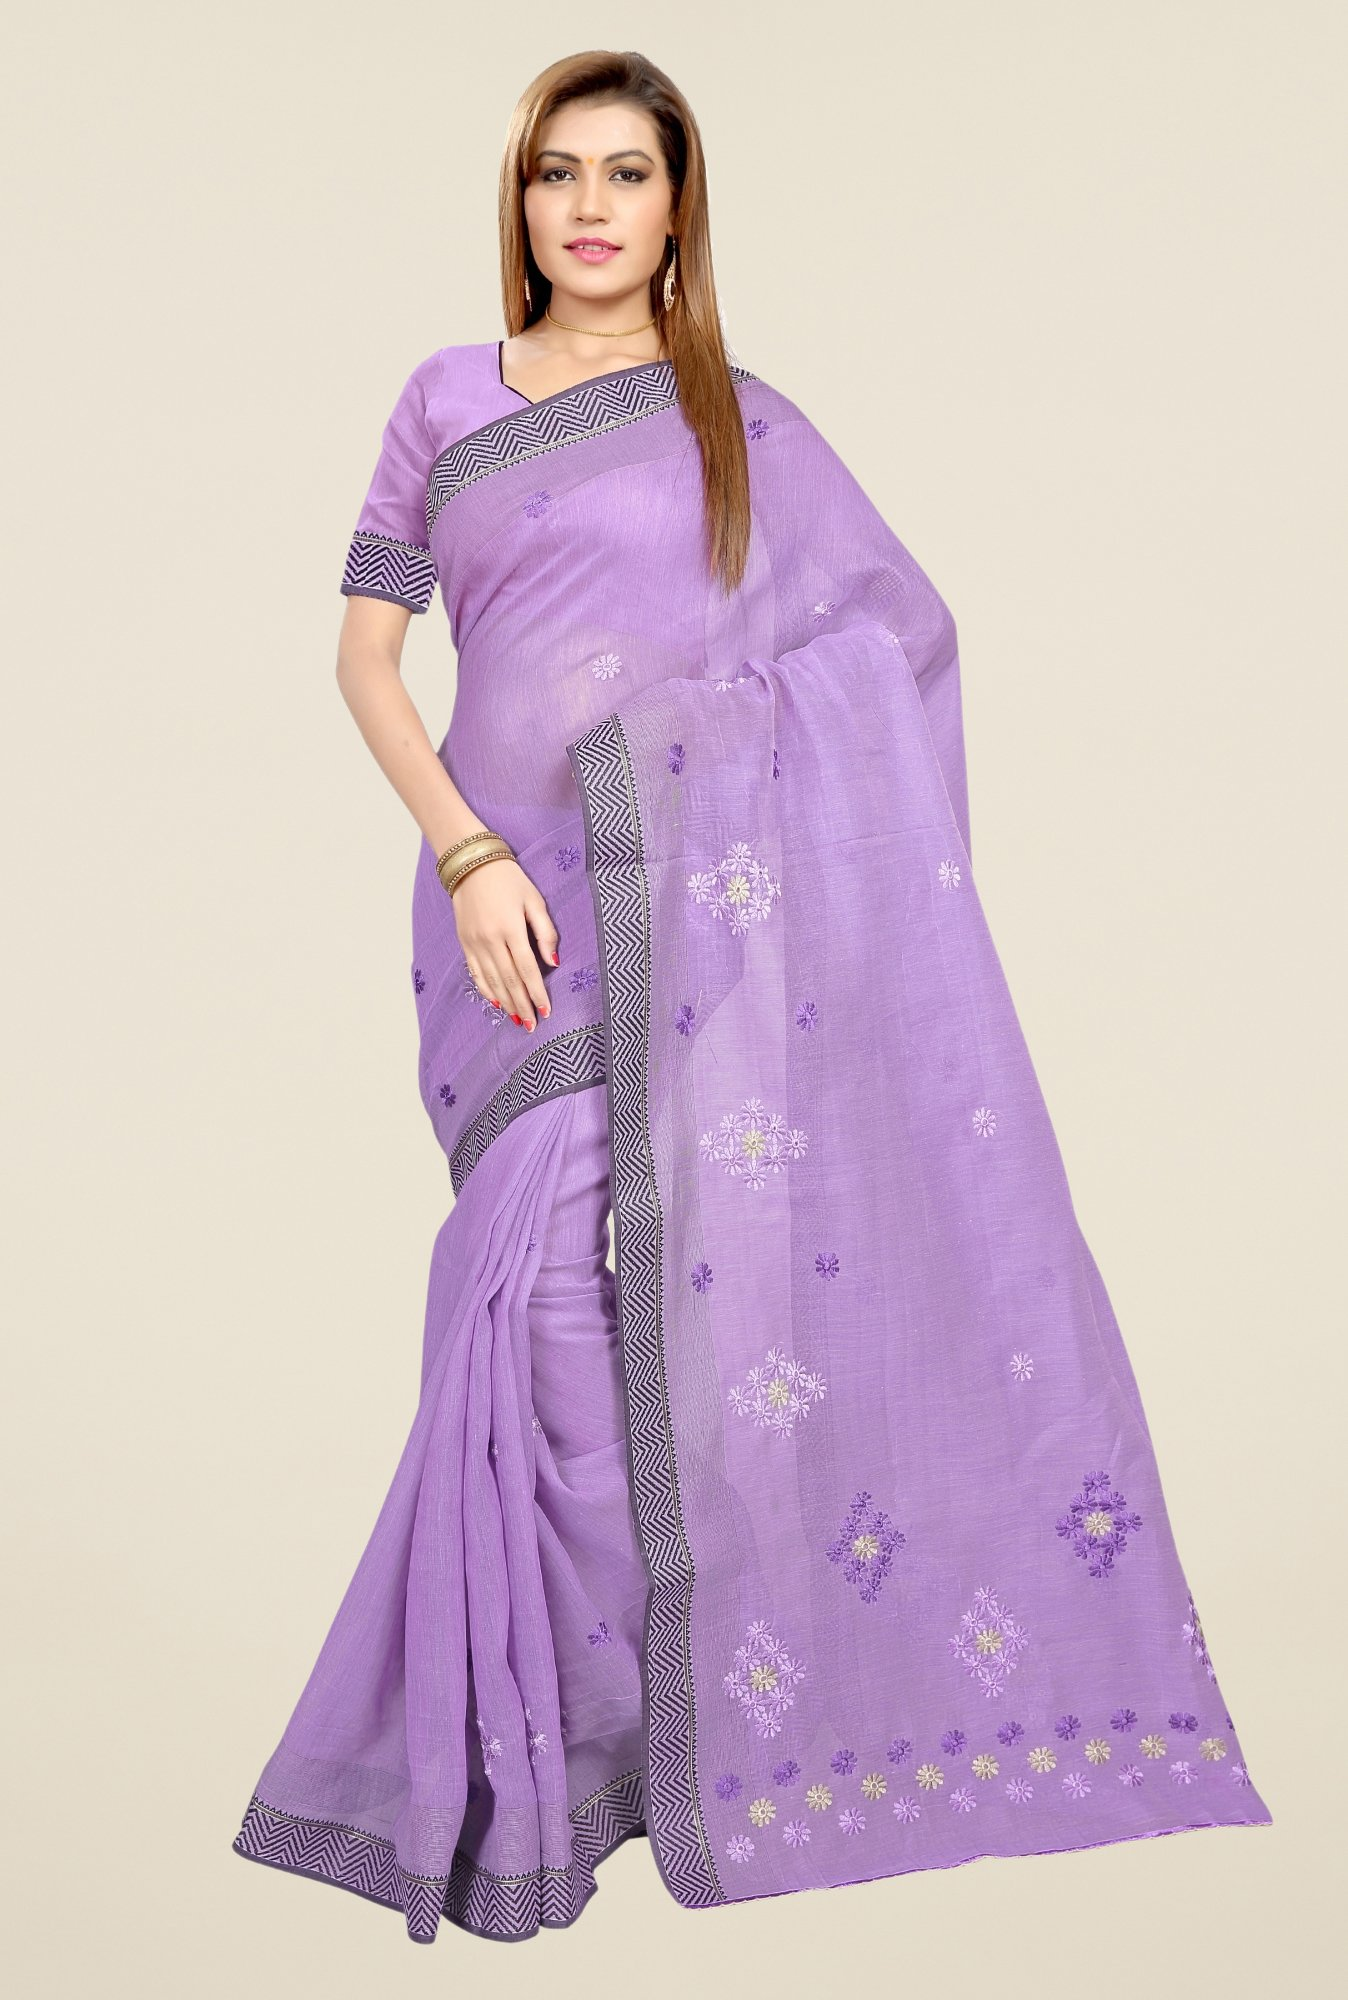 Triveni Purple Embroidered Blended Cotton Saree